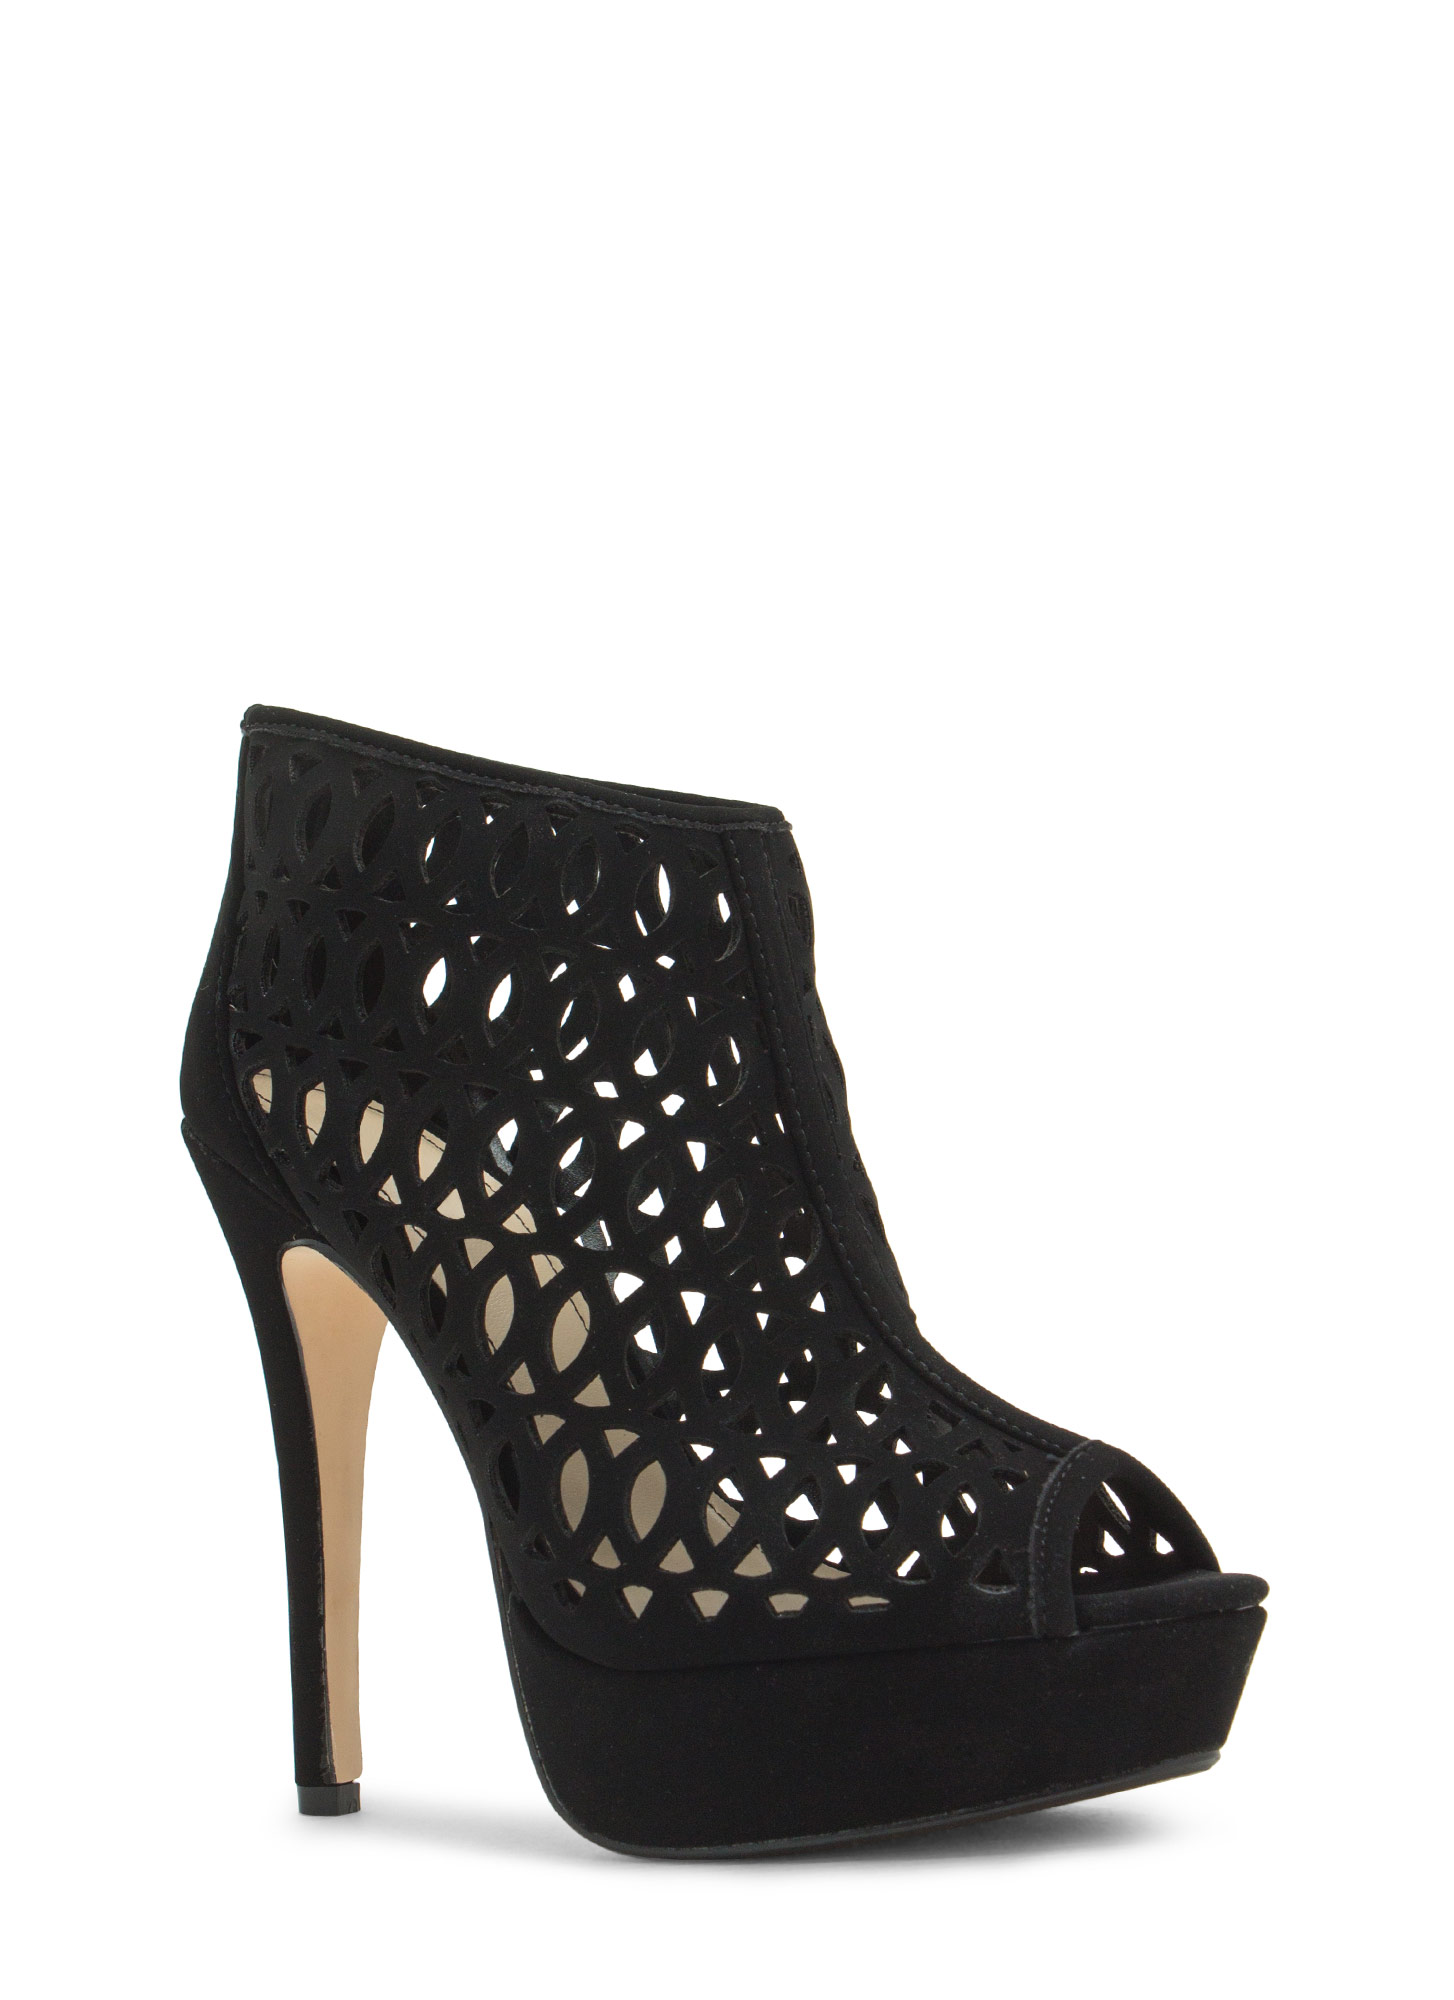 See You Lattice Laser Cut-Out Heels BLACK